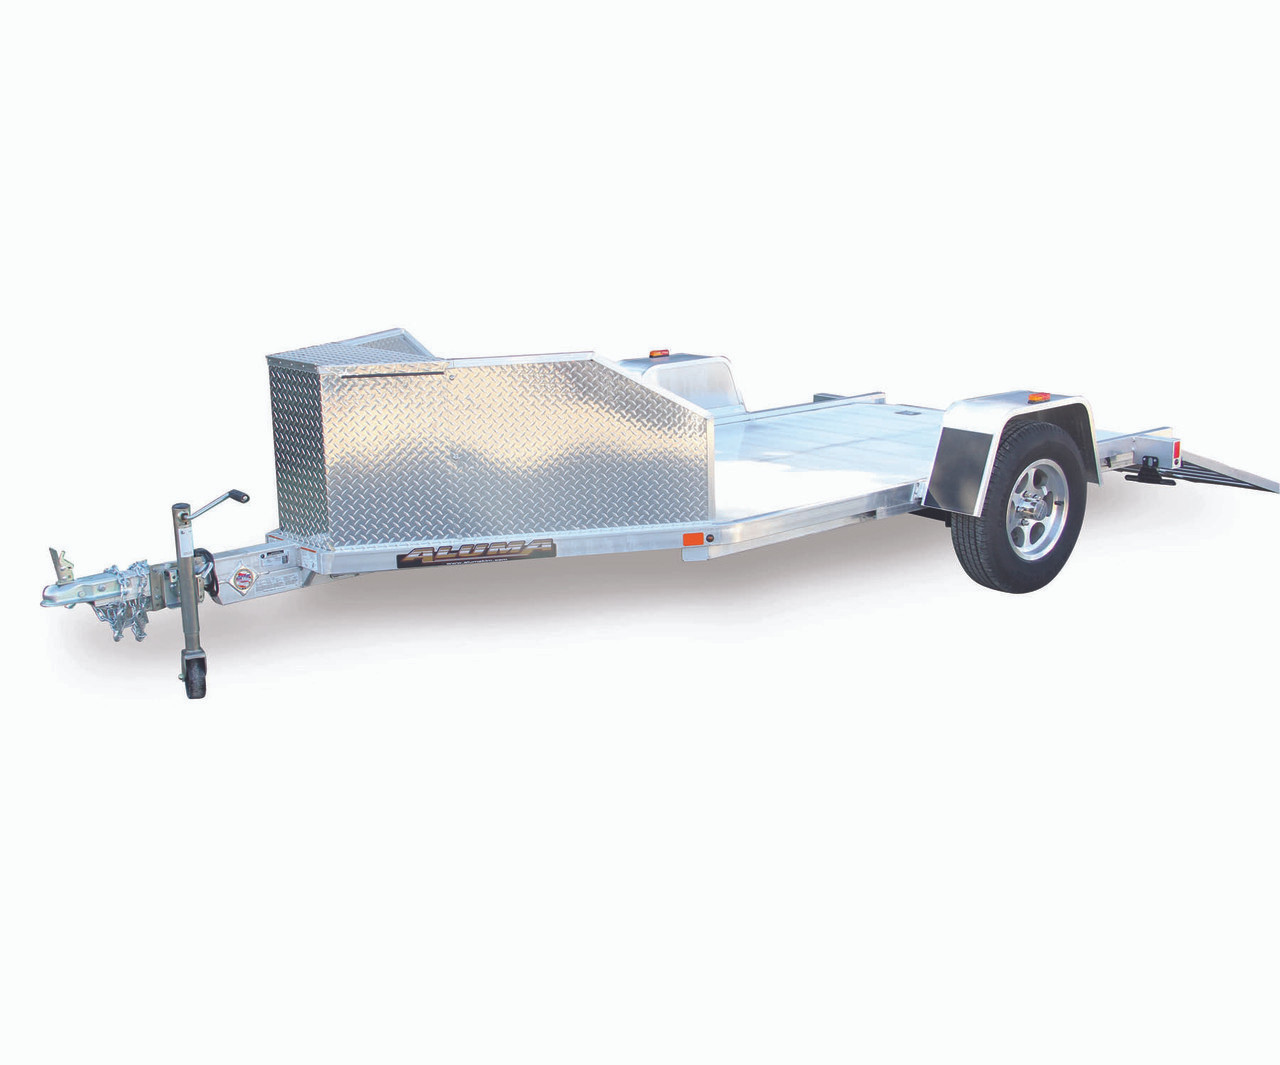 "ALTK1 --- 63"" x 137"" Aluminum Trike Trailer with Ramp"